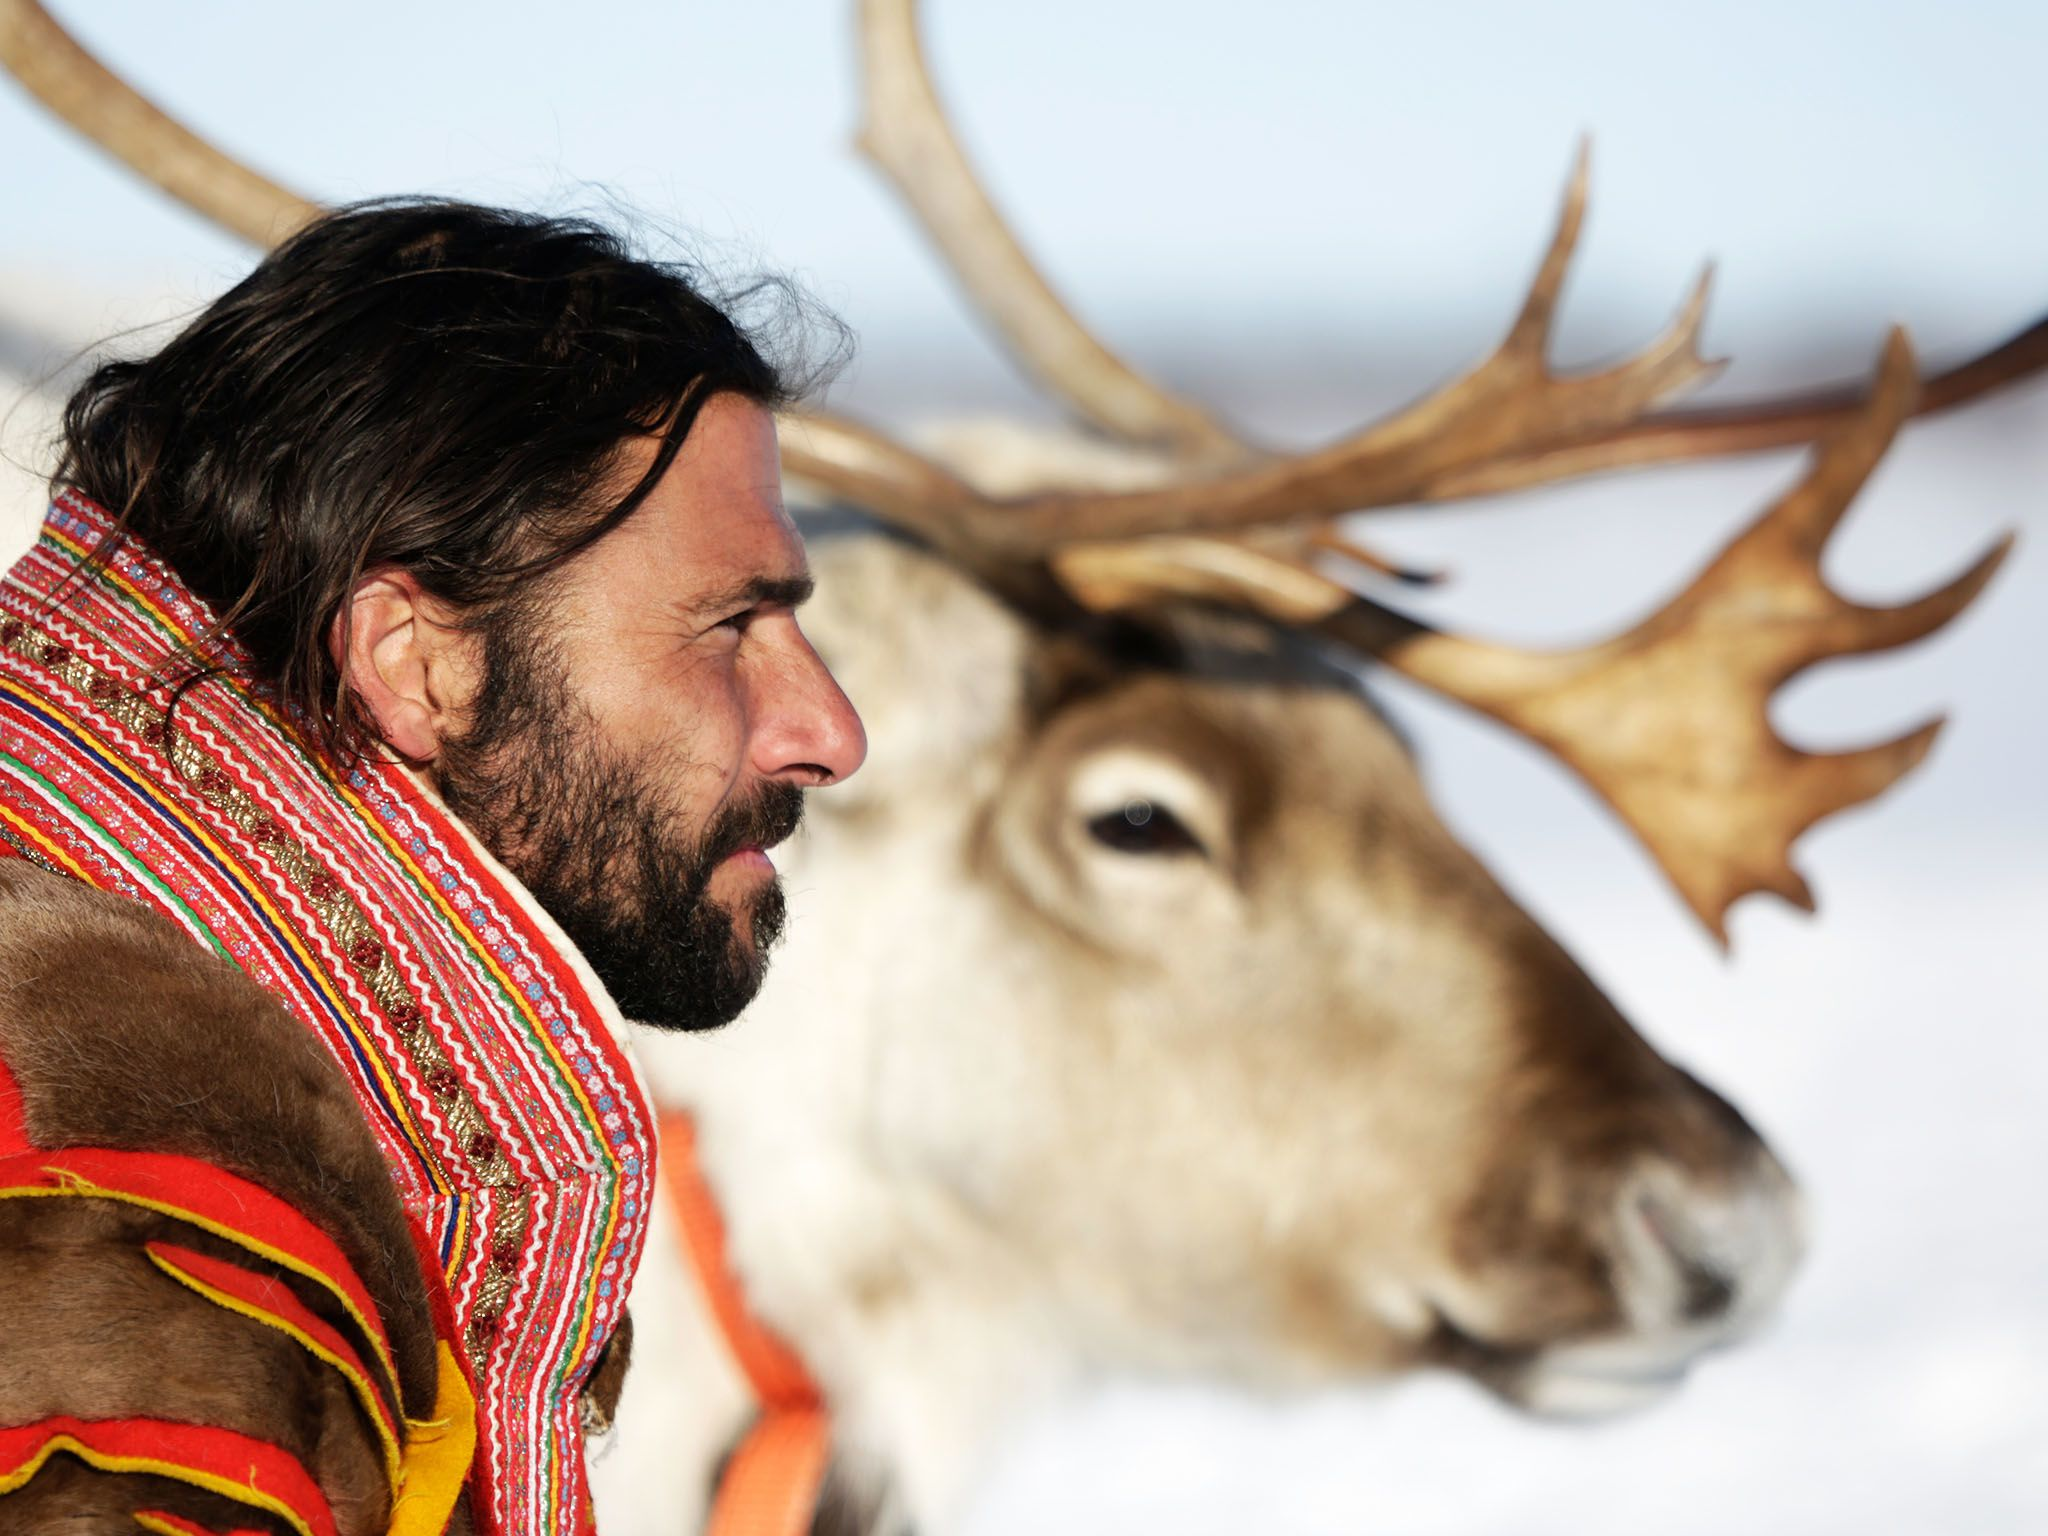 Norway: Hazen with his reindeer stag. This image is from Primal Survivor. [Photo of the day - ژانویه 2016]